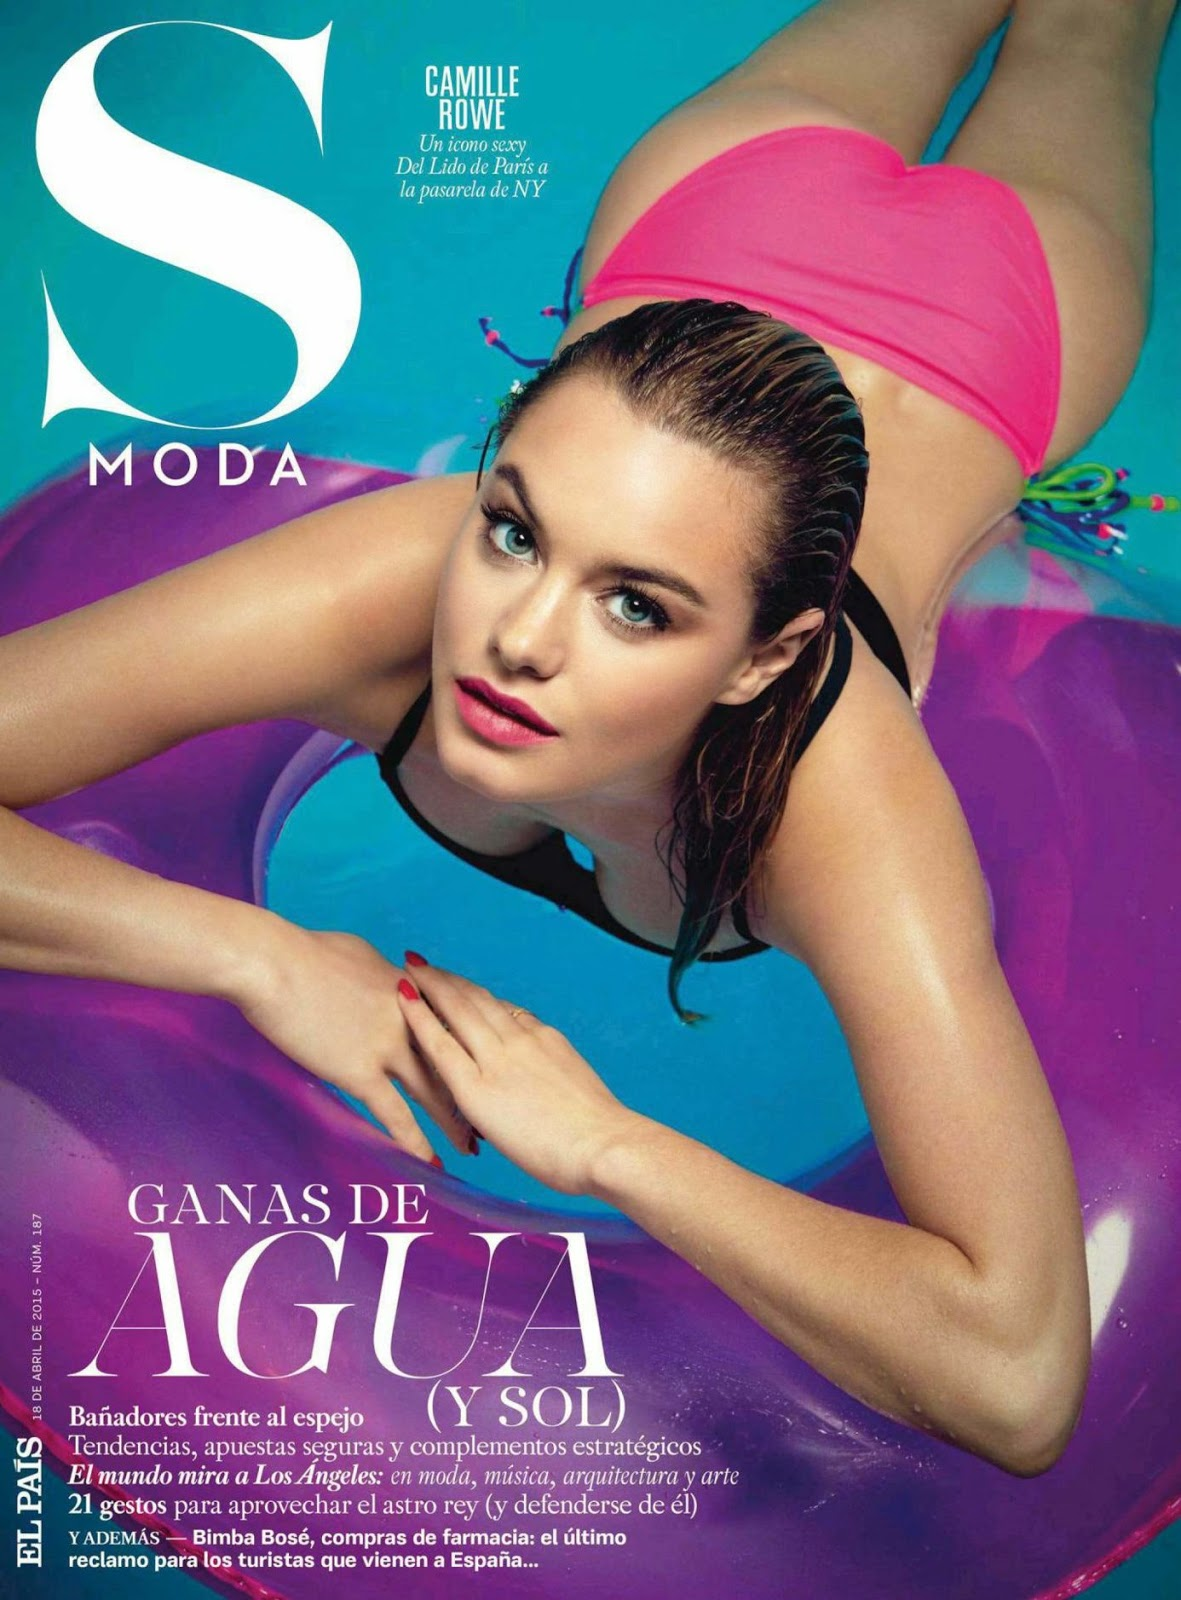 Fashion Model @ Camille Rowe - S Moda Spain, April 2015